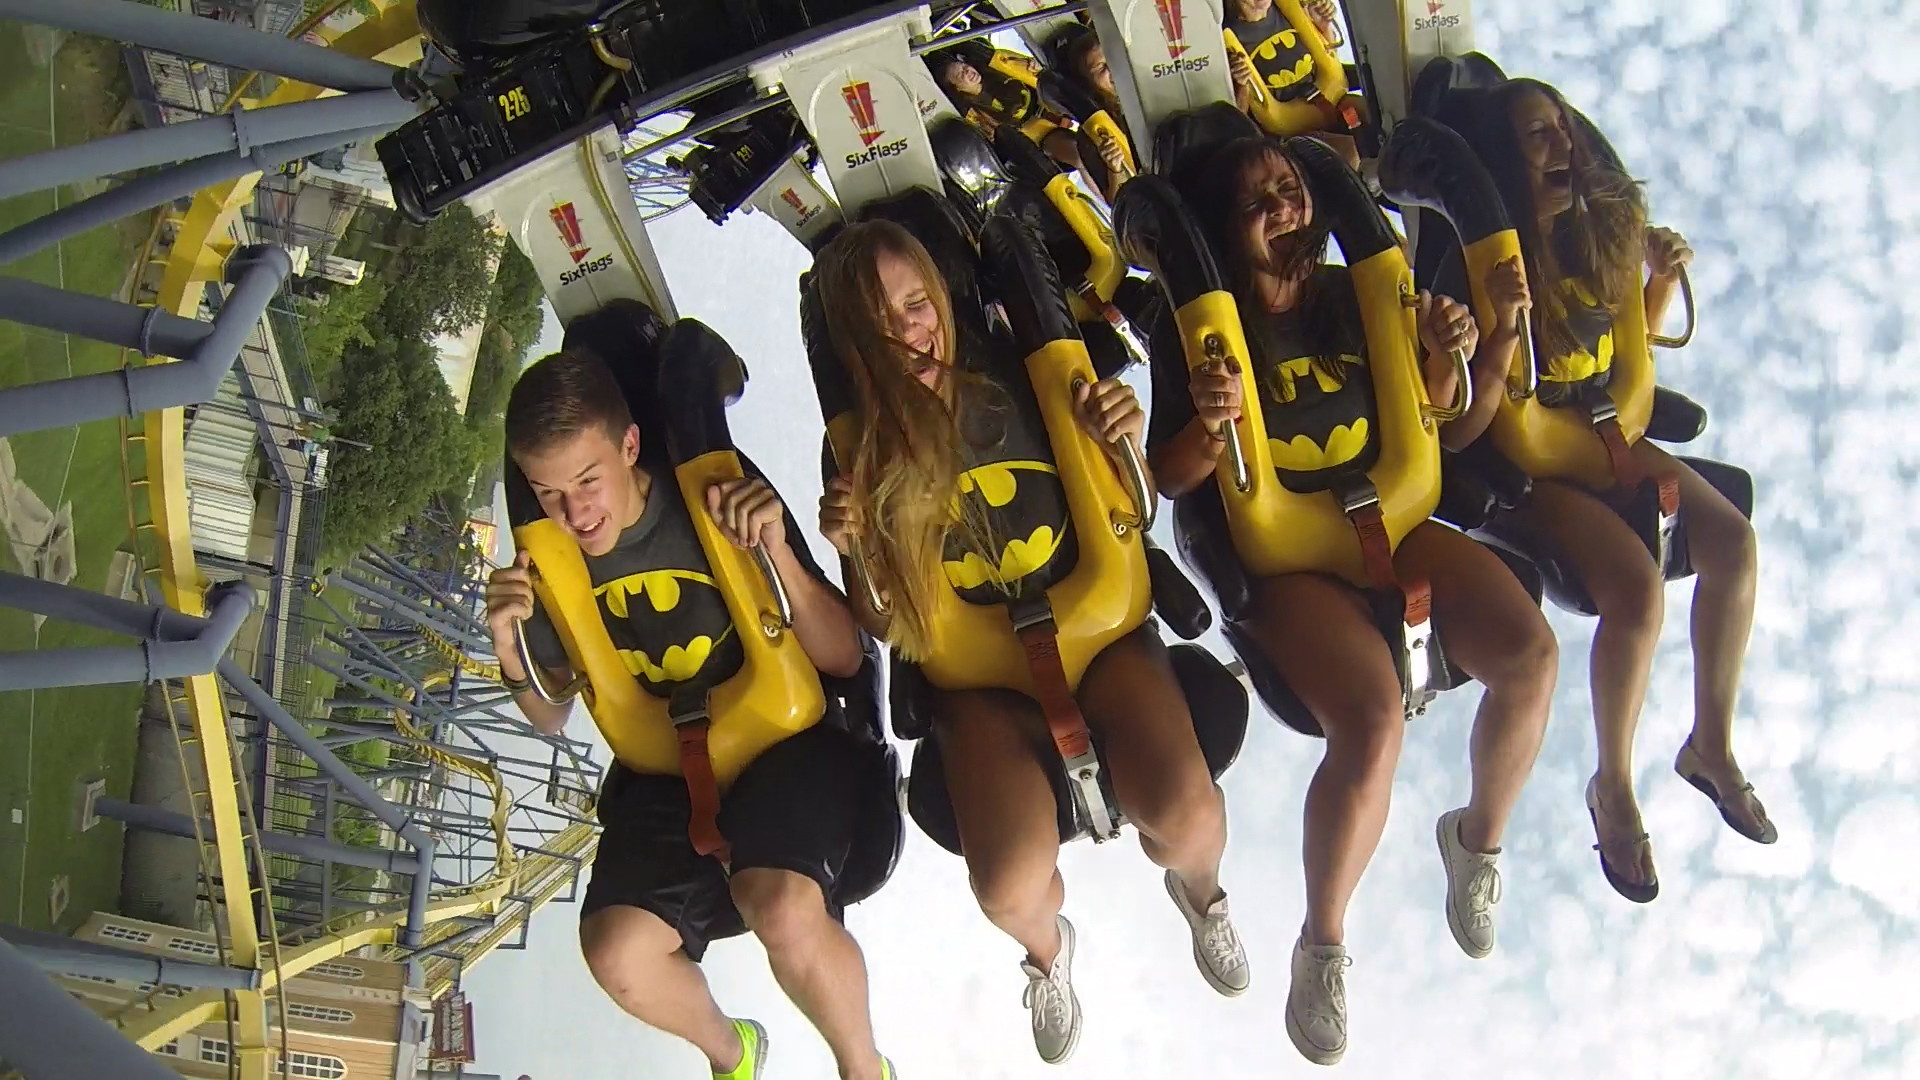 23 Six Flags Discounts & Tips That'll Save You a Ton - The Krazy